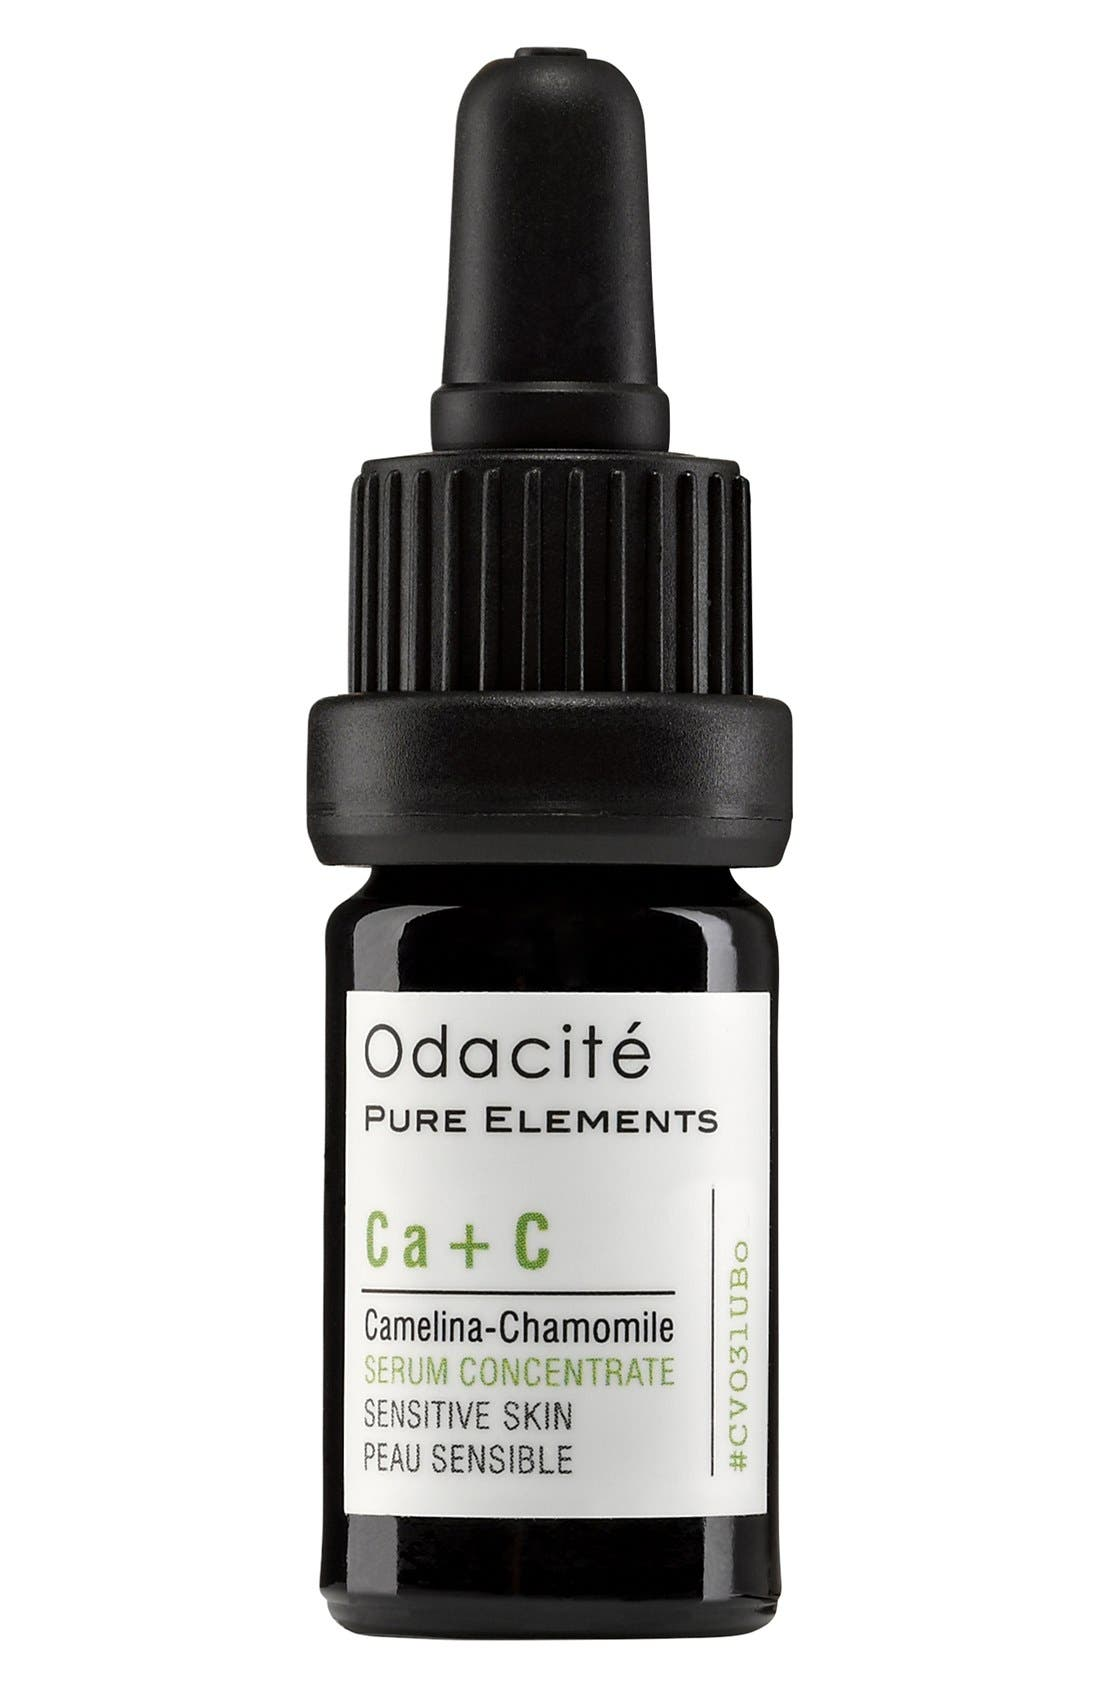 Ca + C Camelina-Chamomile Sensitive Skin Serum Concentrate,                             Main thumbnail 1, color,                             NO COLOR